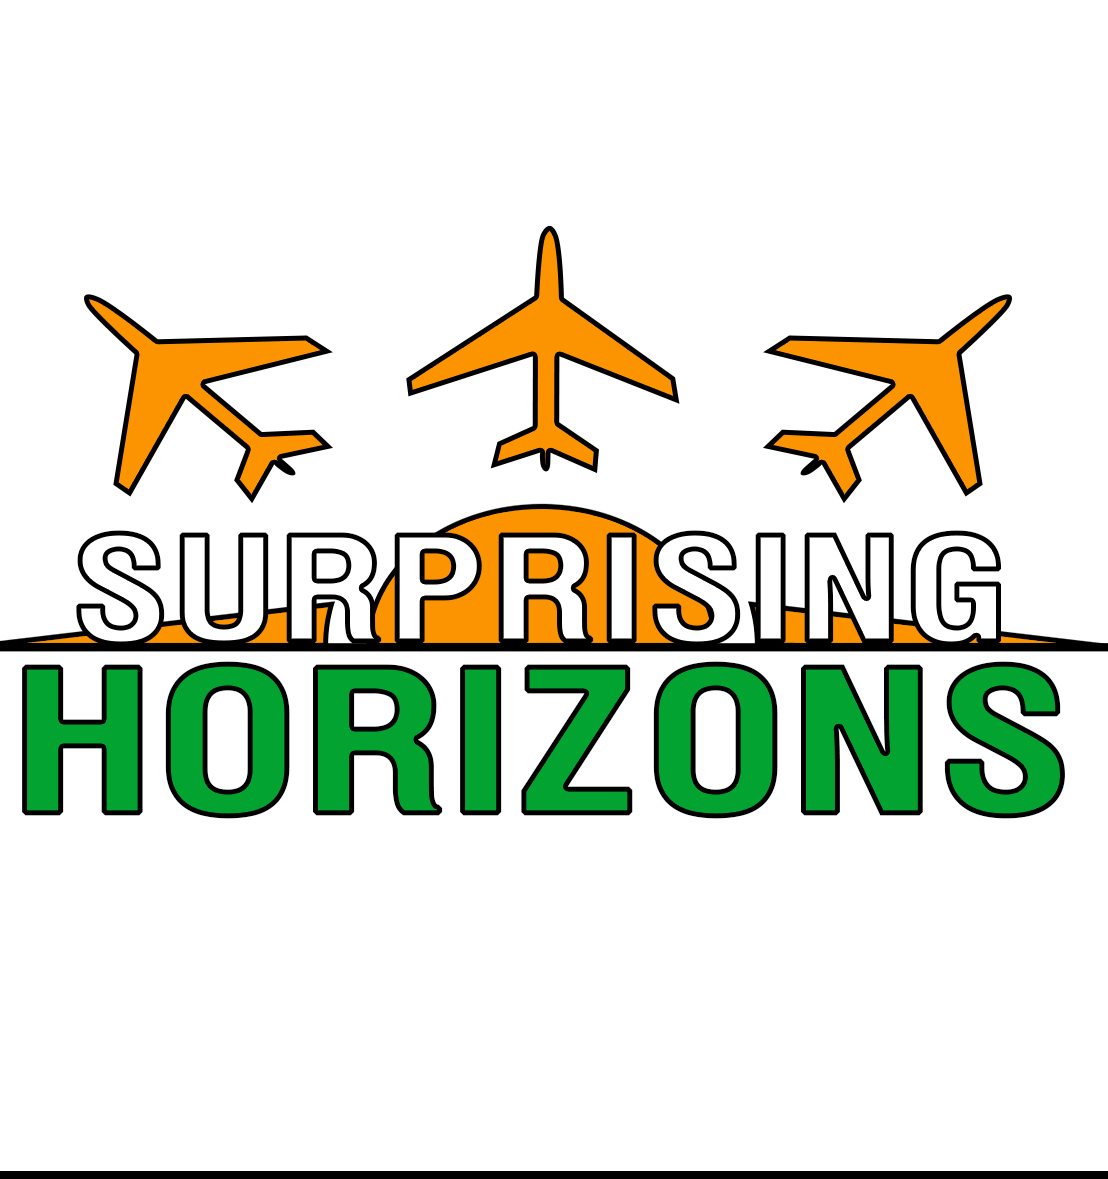 Surprising Horizons